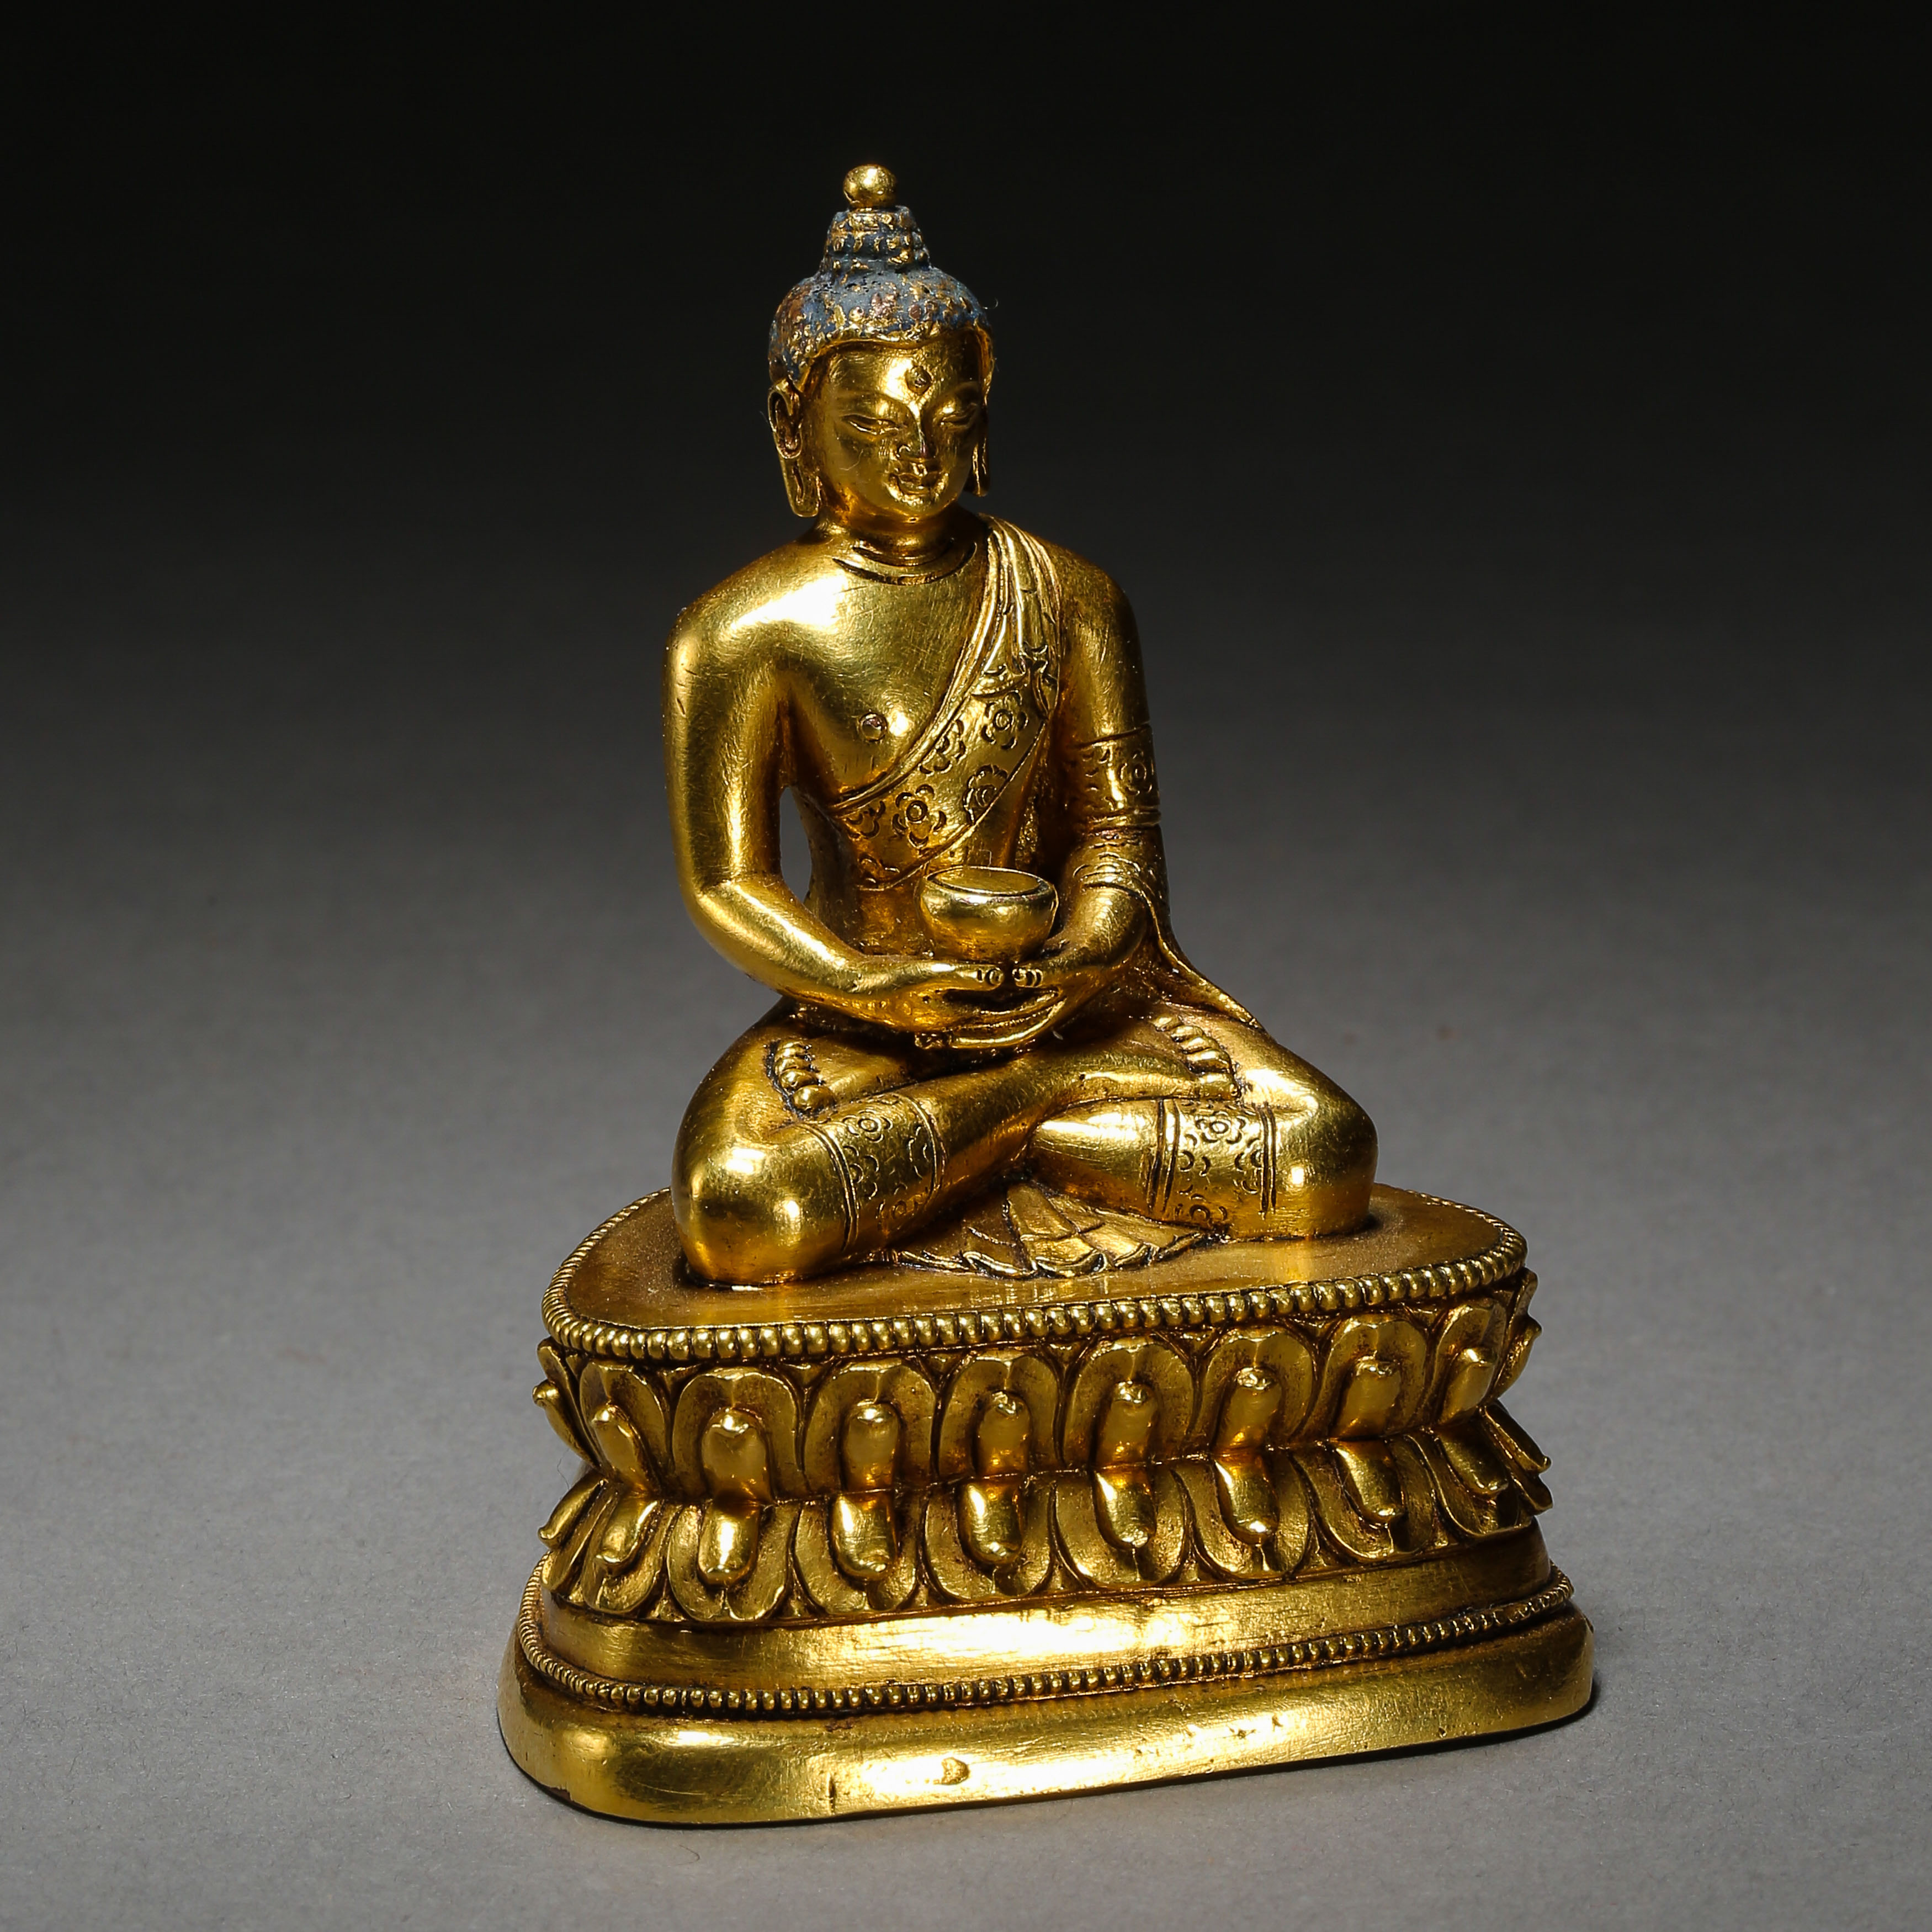 SEATED GILT BRONZE BUDDHA, QING DYNASTY, CHINA - Image 5 of 11